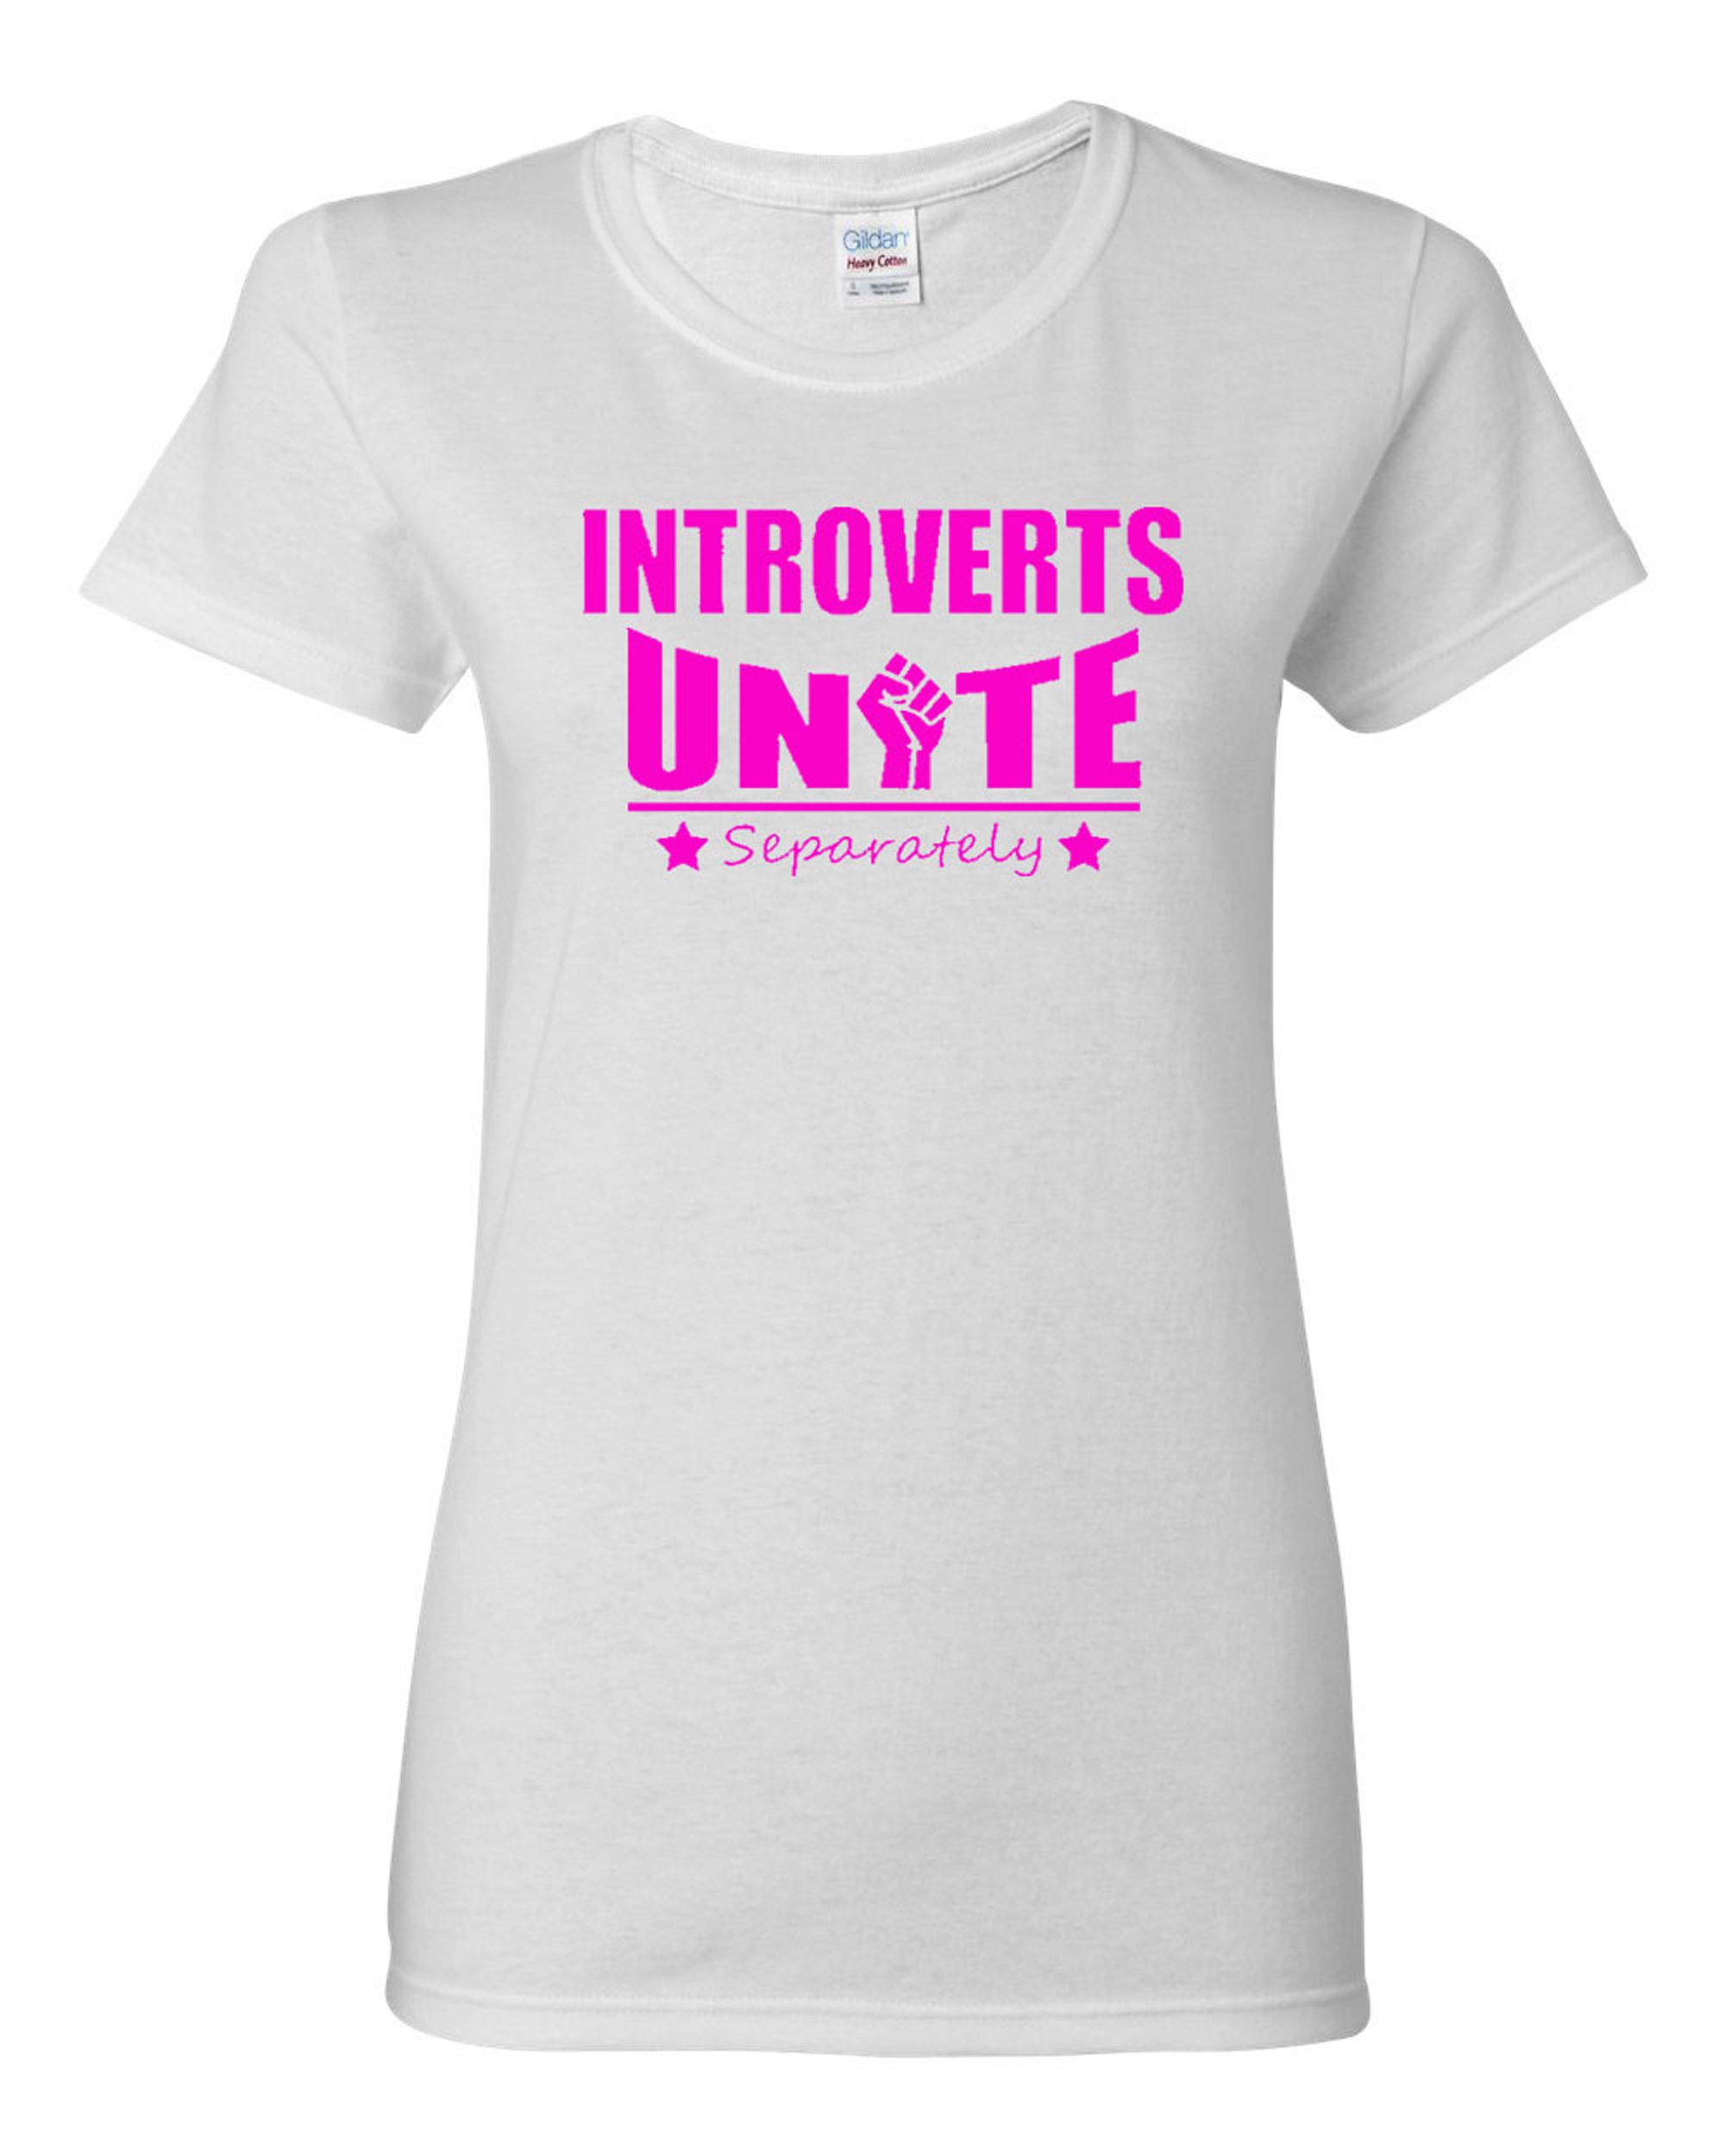 Ladies Introverts Unite Separately Funny T-Shirt Tee